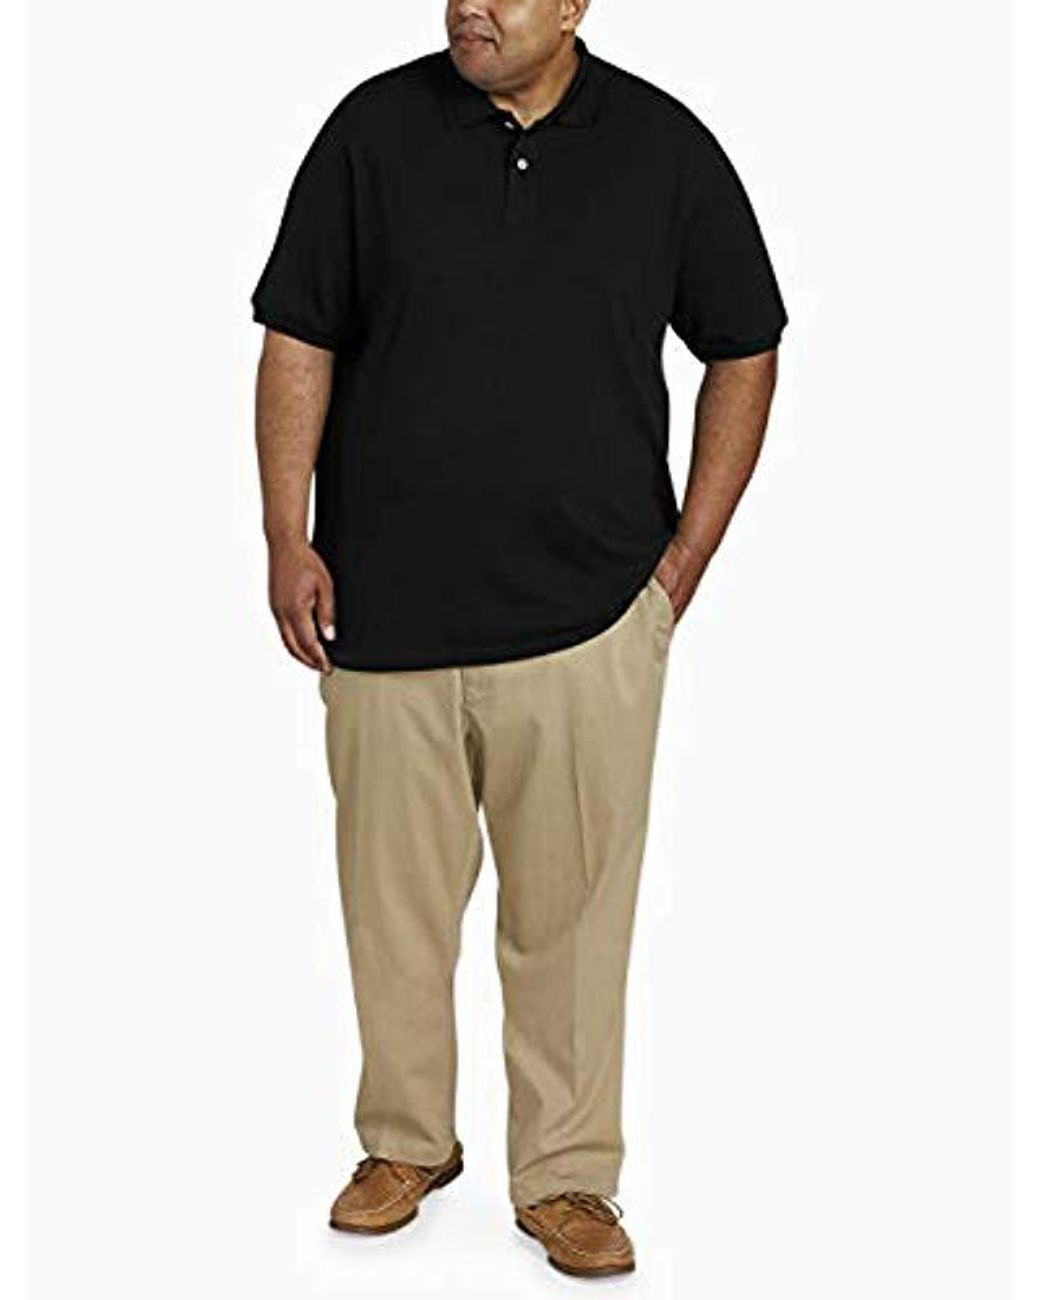 Essentials Mens Big /& Tall Cotton Pique Polo Shirt fit by DXL